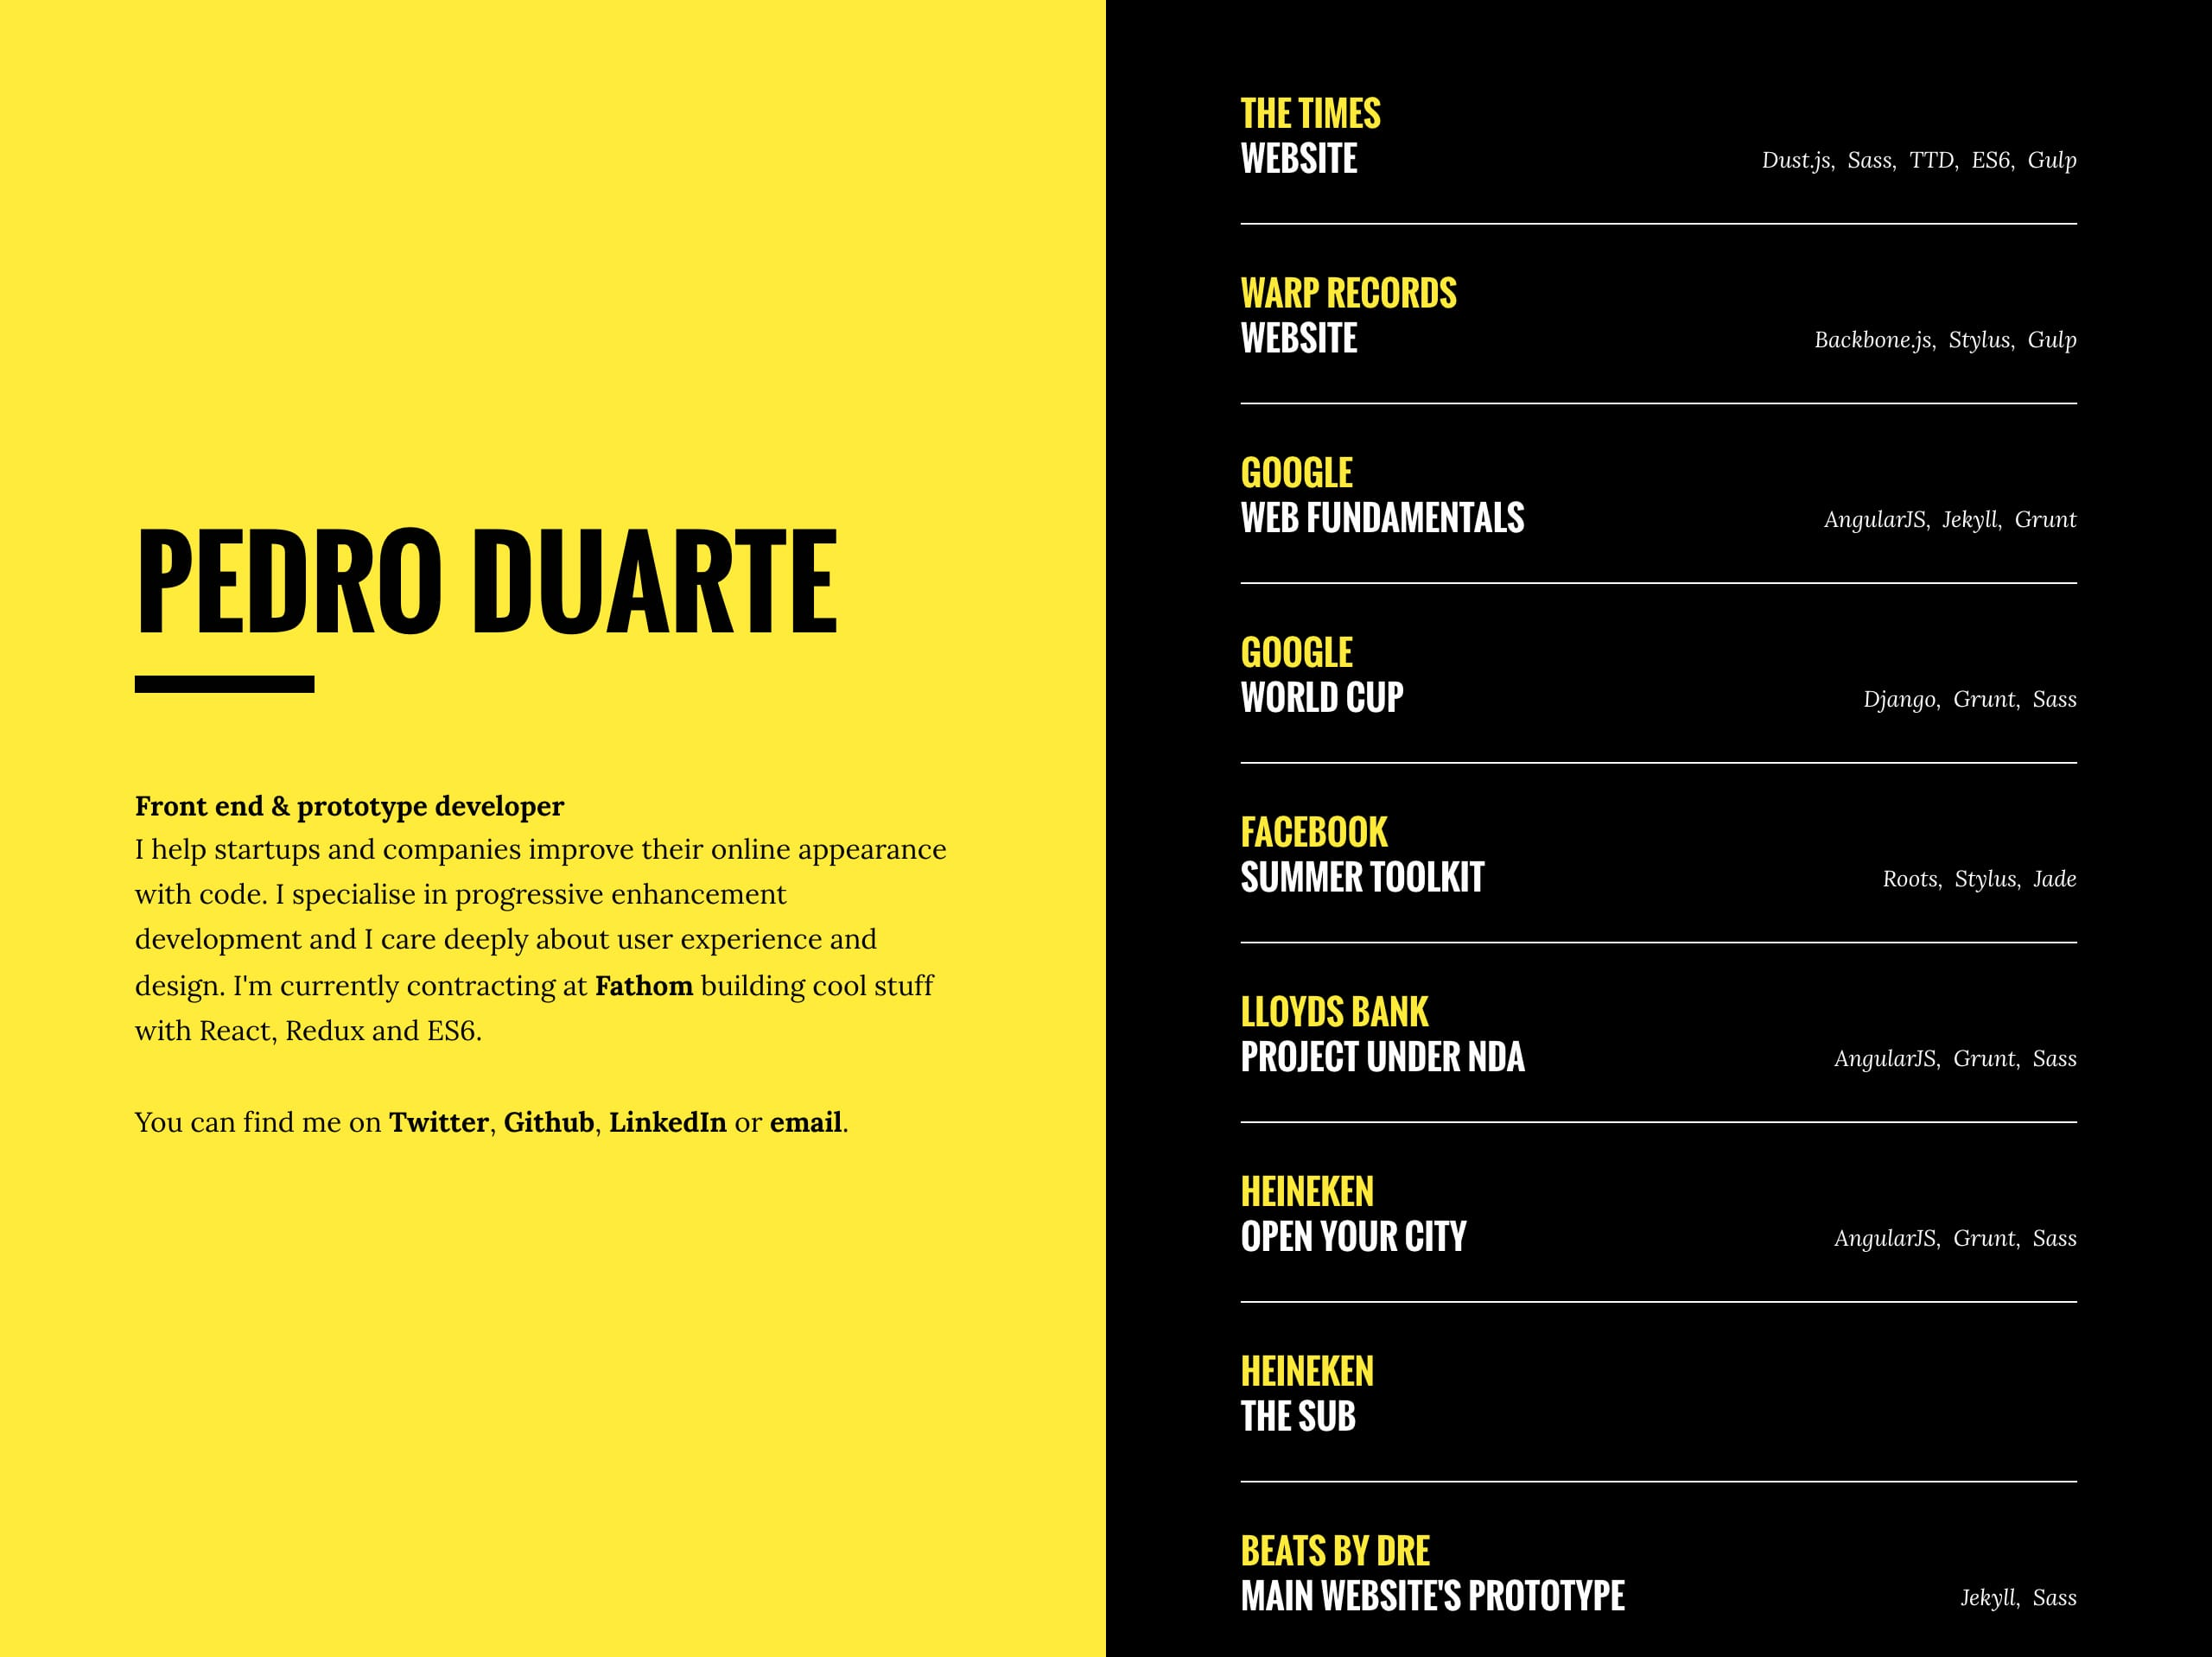 Pedro Duarte Website Screenshot